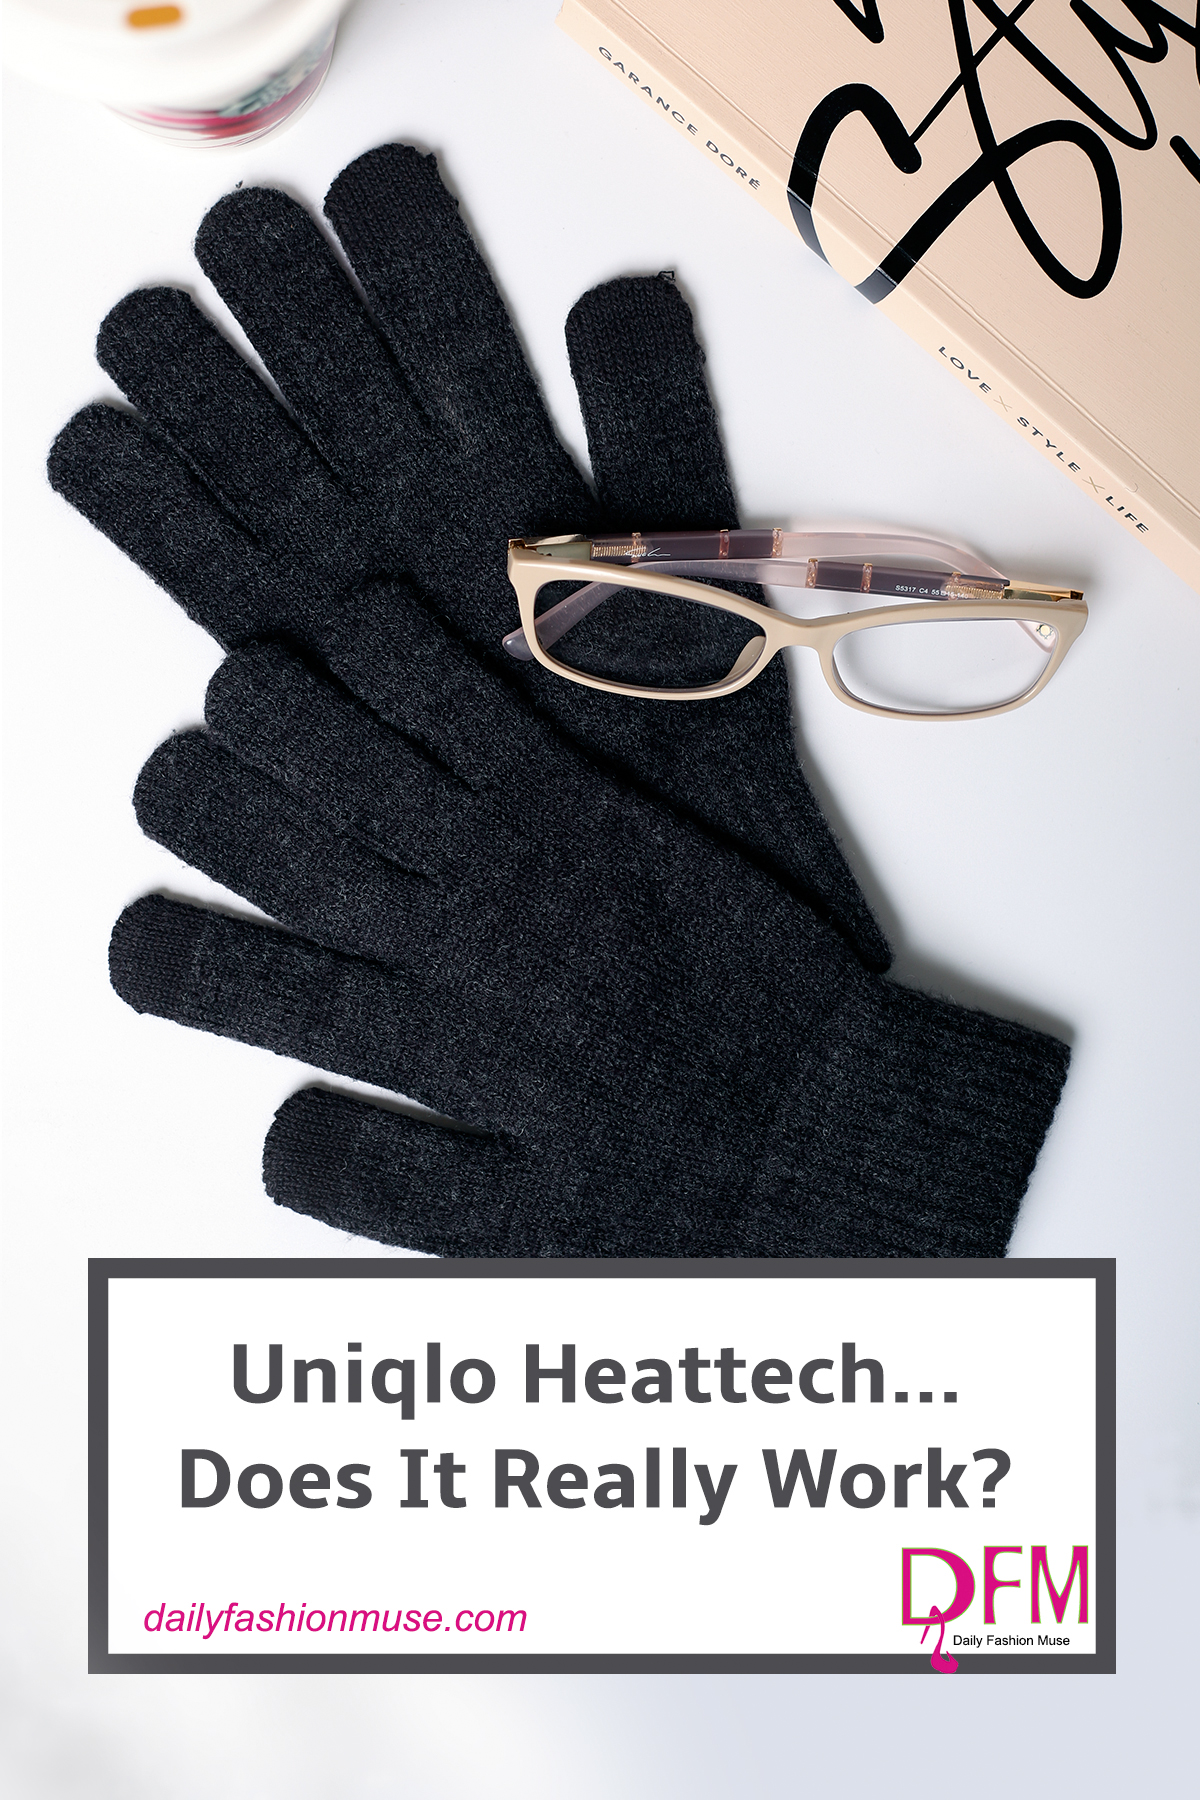 Uniqlo Heattech clothing creates heat by using the moisture your body naturally produces. Click to read about my experience with Uniqlo Heattech.